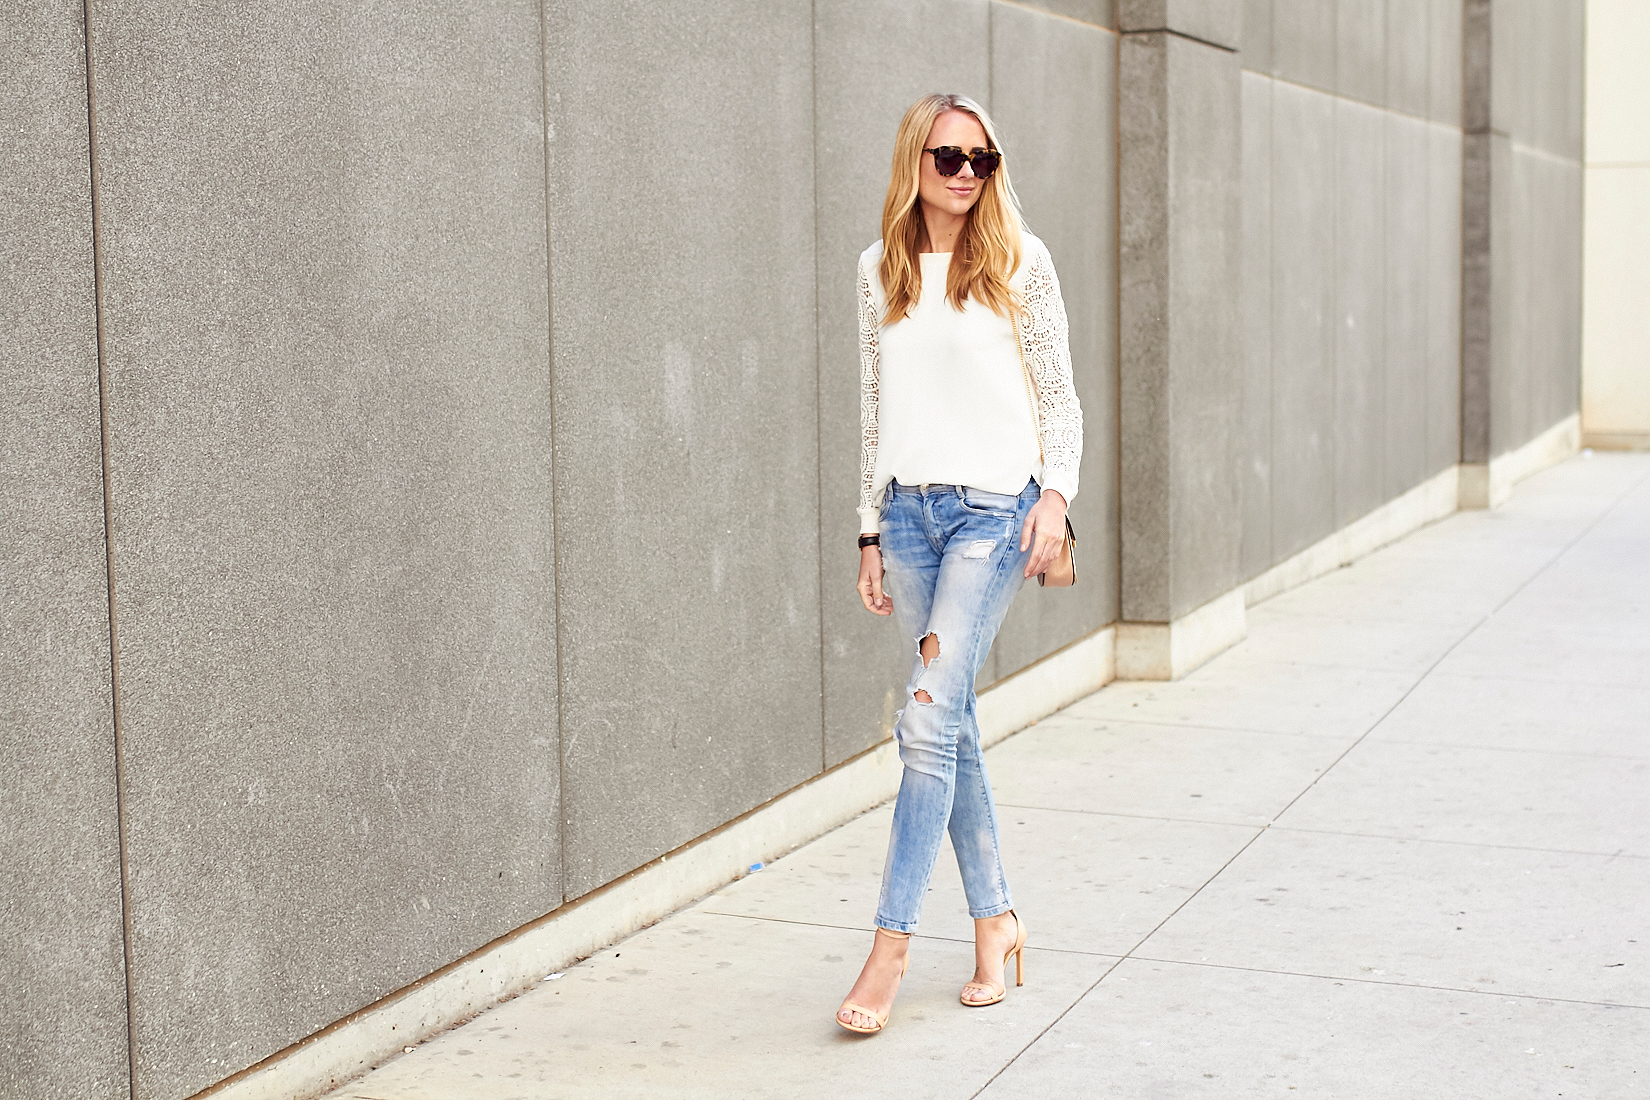 fashion_jackson_white_lace_sleeve_blosue_ripped_denim_skinny_jeans_nude_ankle_strap_heels